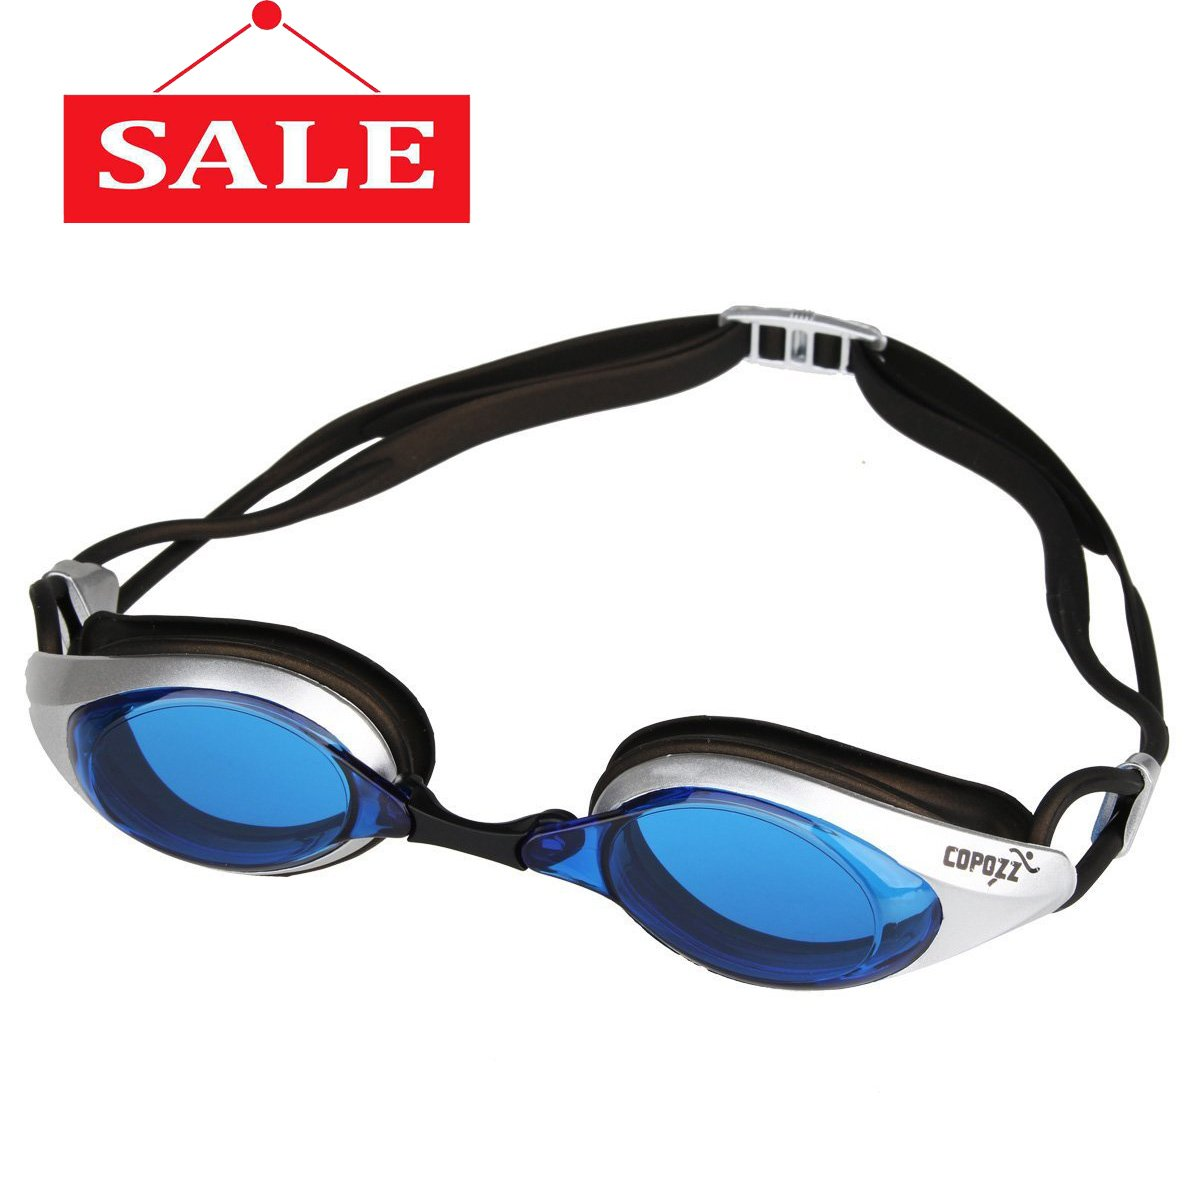 COPOZZ Competitive Swim Goggles, 3550 Shatterproof Swimming Reflective Mirror/Clear Anti Fog UV Protection Water Goggles, No Leaking Triathlon Racing Goggles for Unisex Adult Men and Women, Teenagers